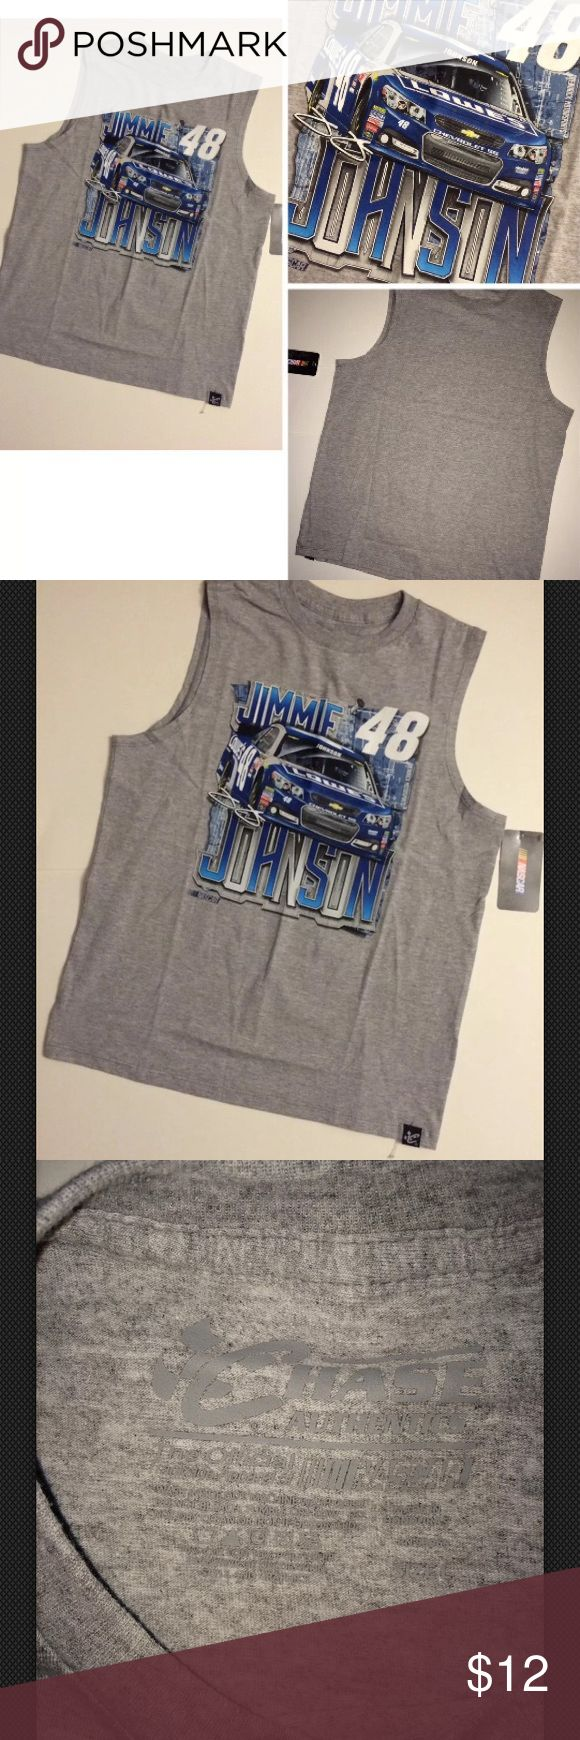 """Jimmie Johnson #48 NASCAR Sleeveless Tank Top For sale:Jimmie Johnson Chase Authentics #48 Lowe's Grey Graphic Crewneck Tee Shirt Youth. Sz Large. Cotton. Sleeveless. Machine wash. Dimensions: pit to pit, approximately 17"""". Length: approximately 22"""". Interested? Nascar Shirts & Tops Tank Tops"""